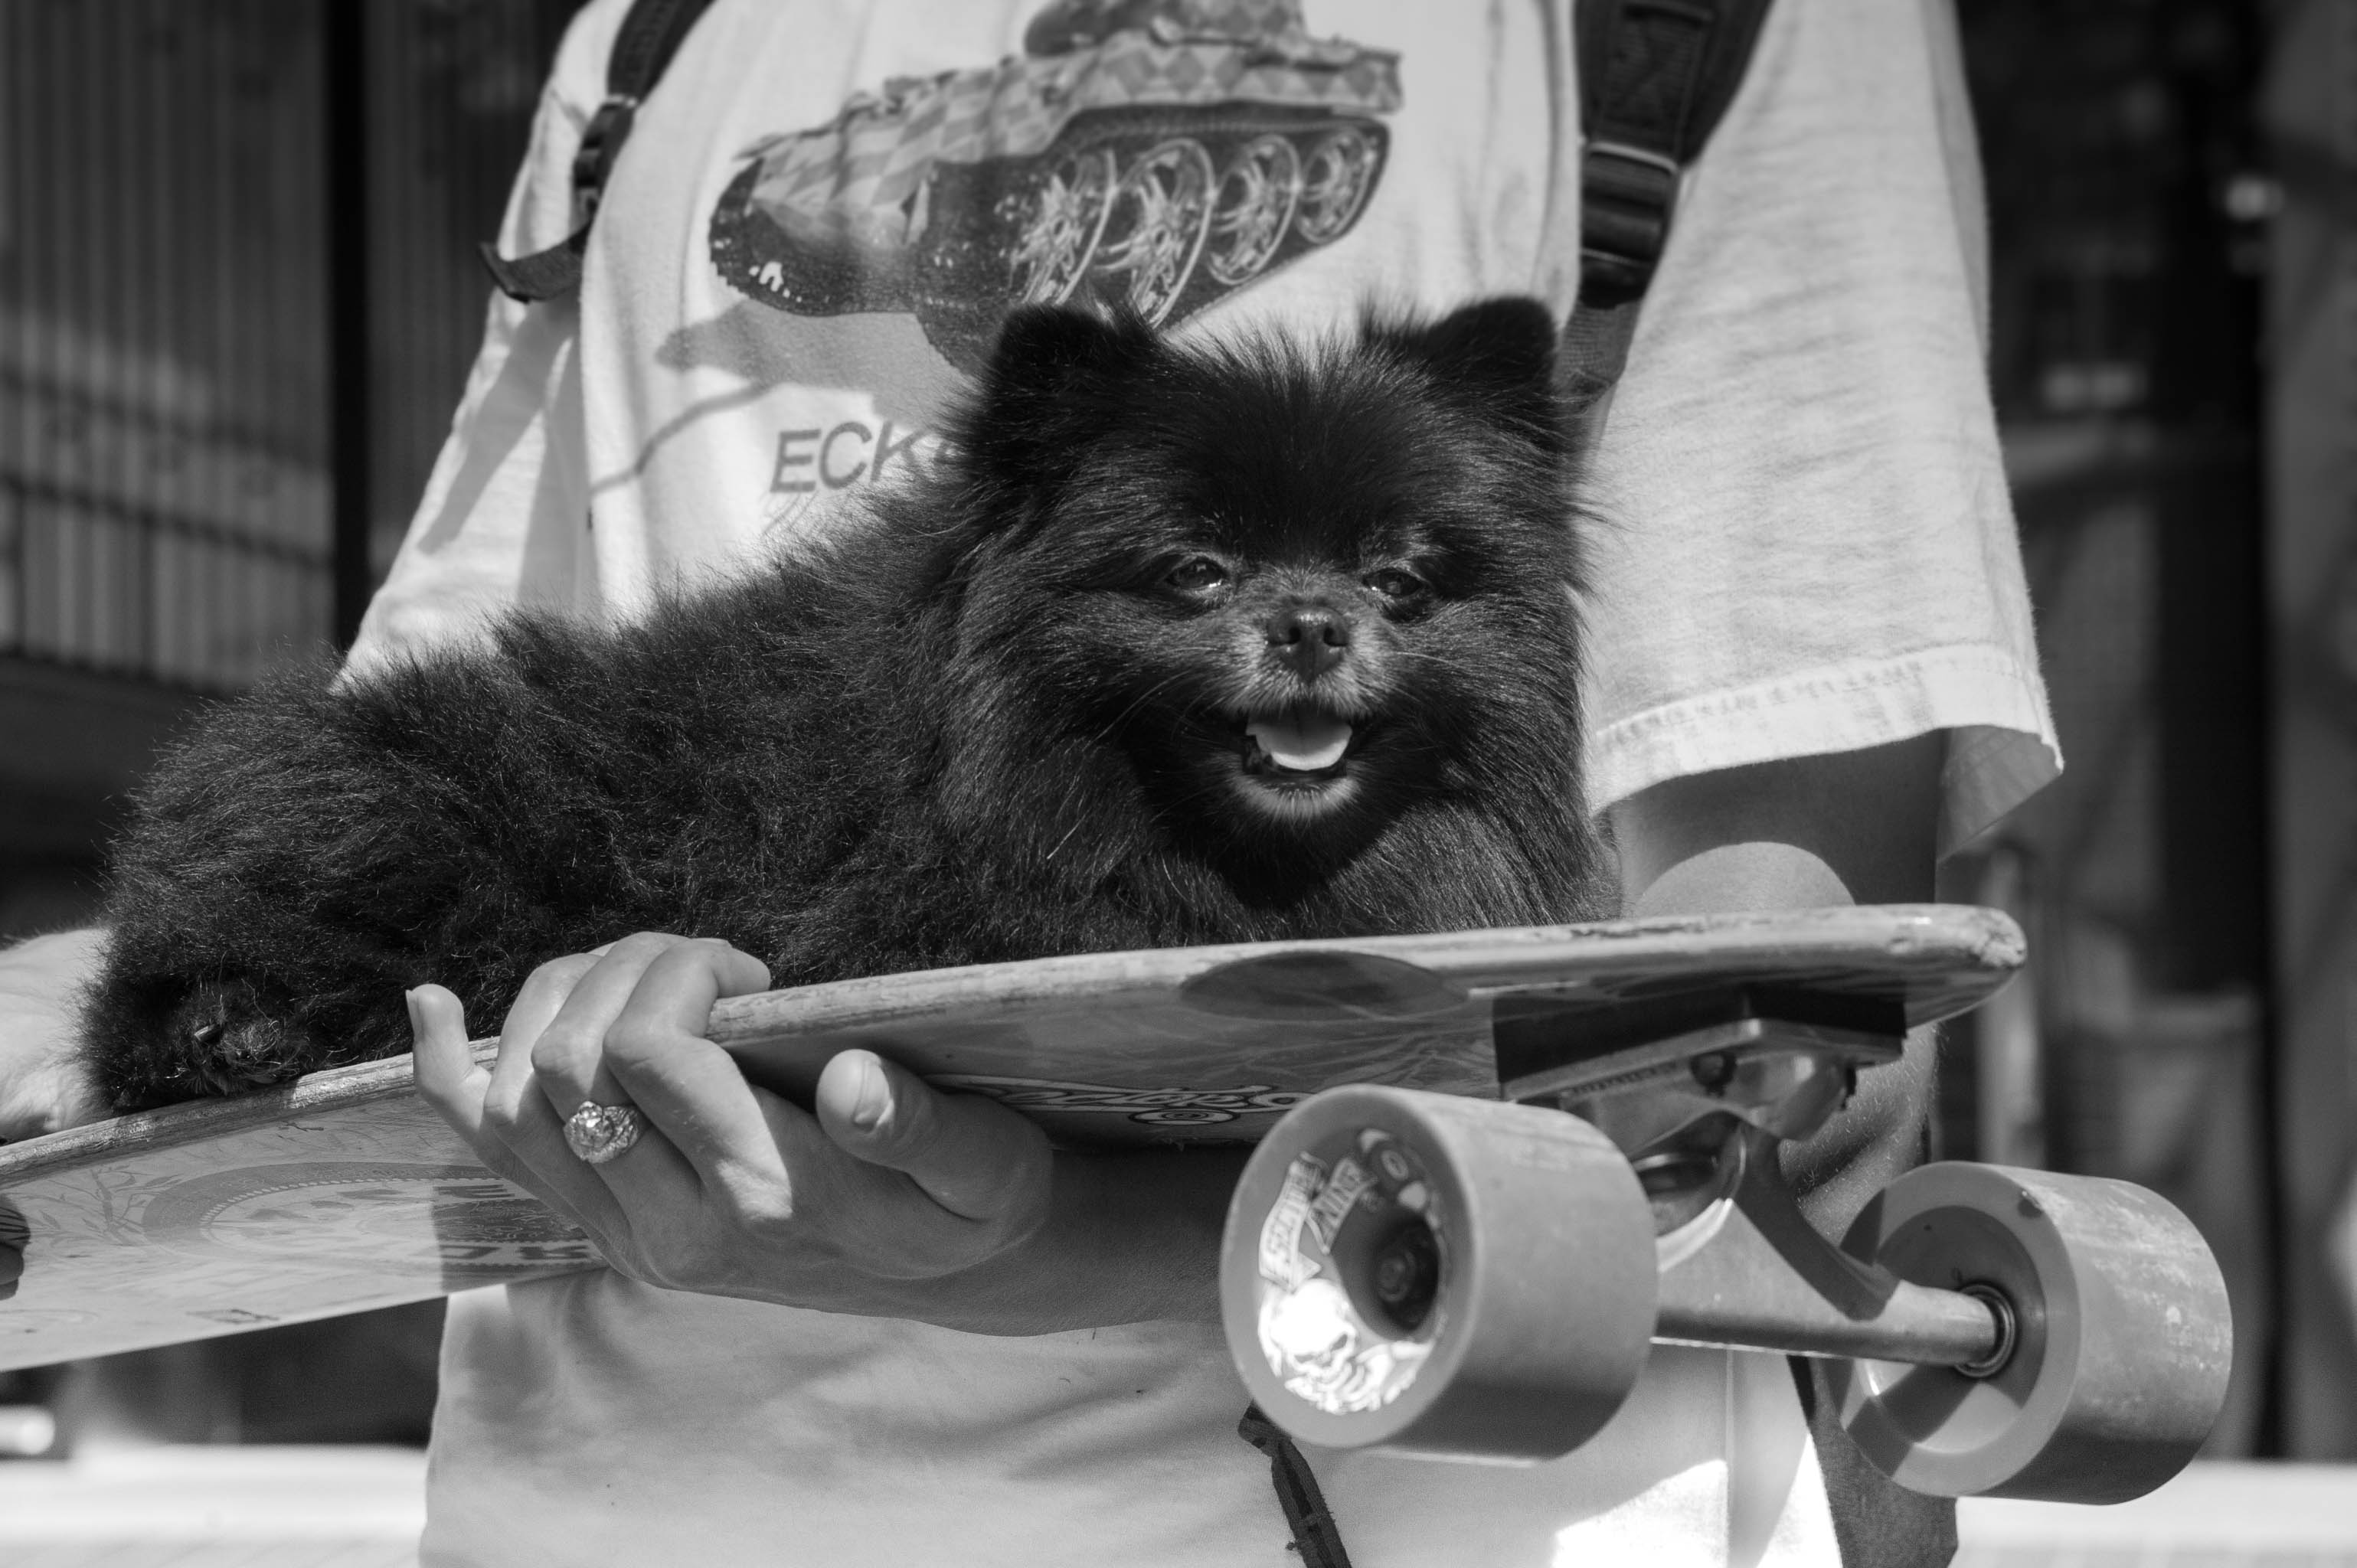 small dog on skateboard